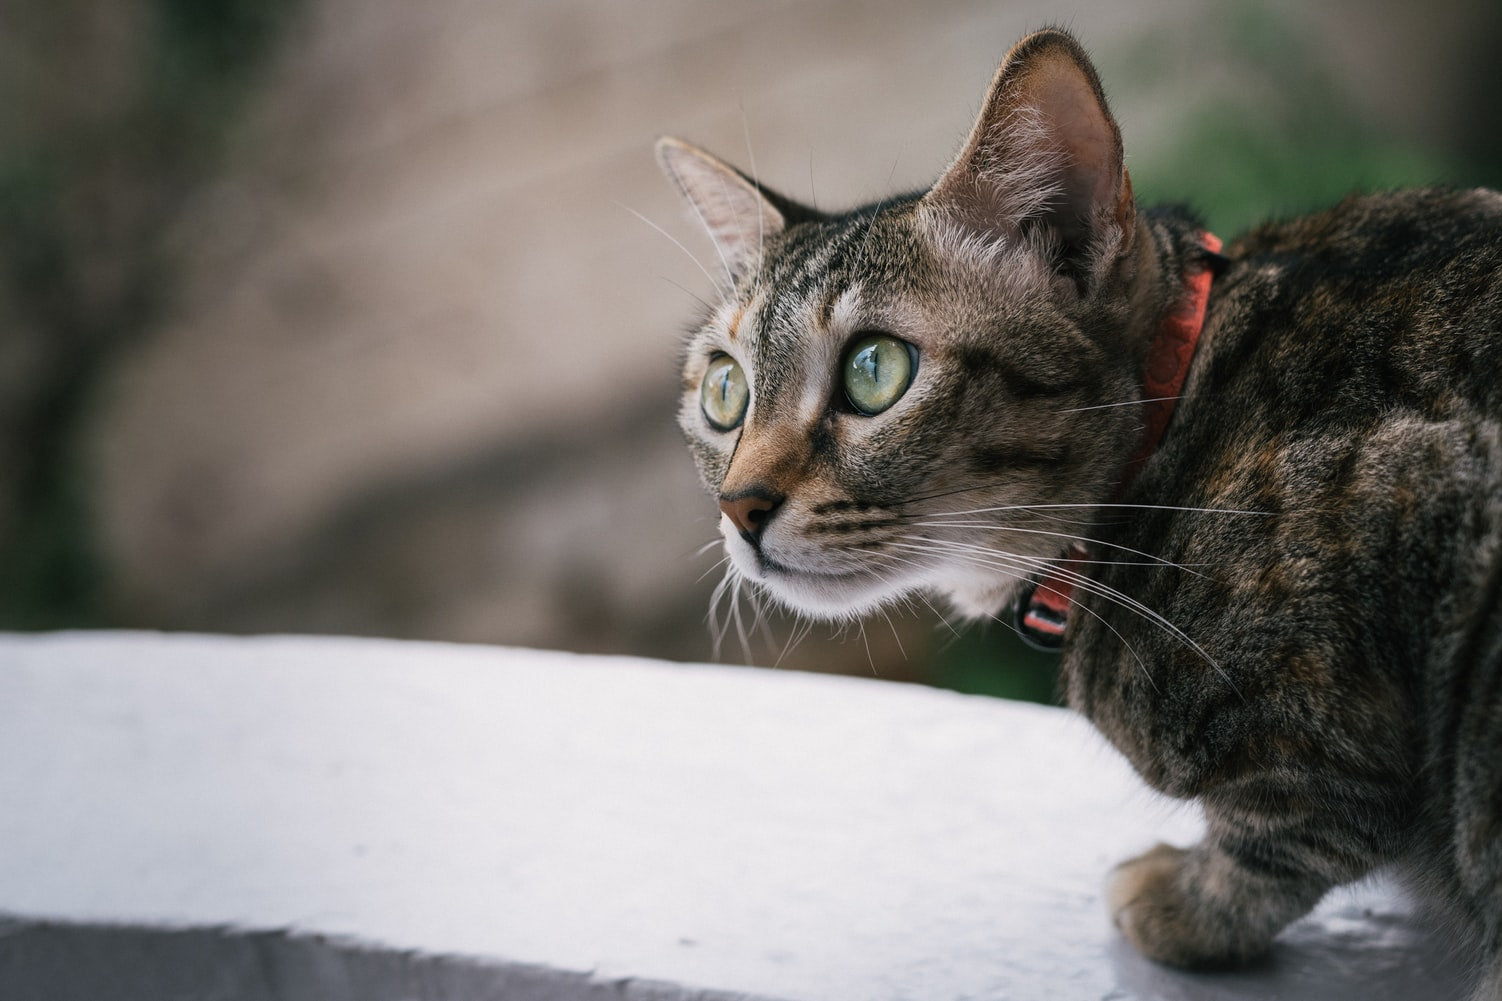 Gray tabby cat with green eyes and red collar